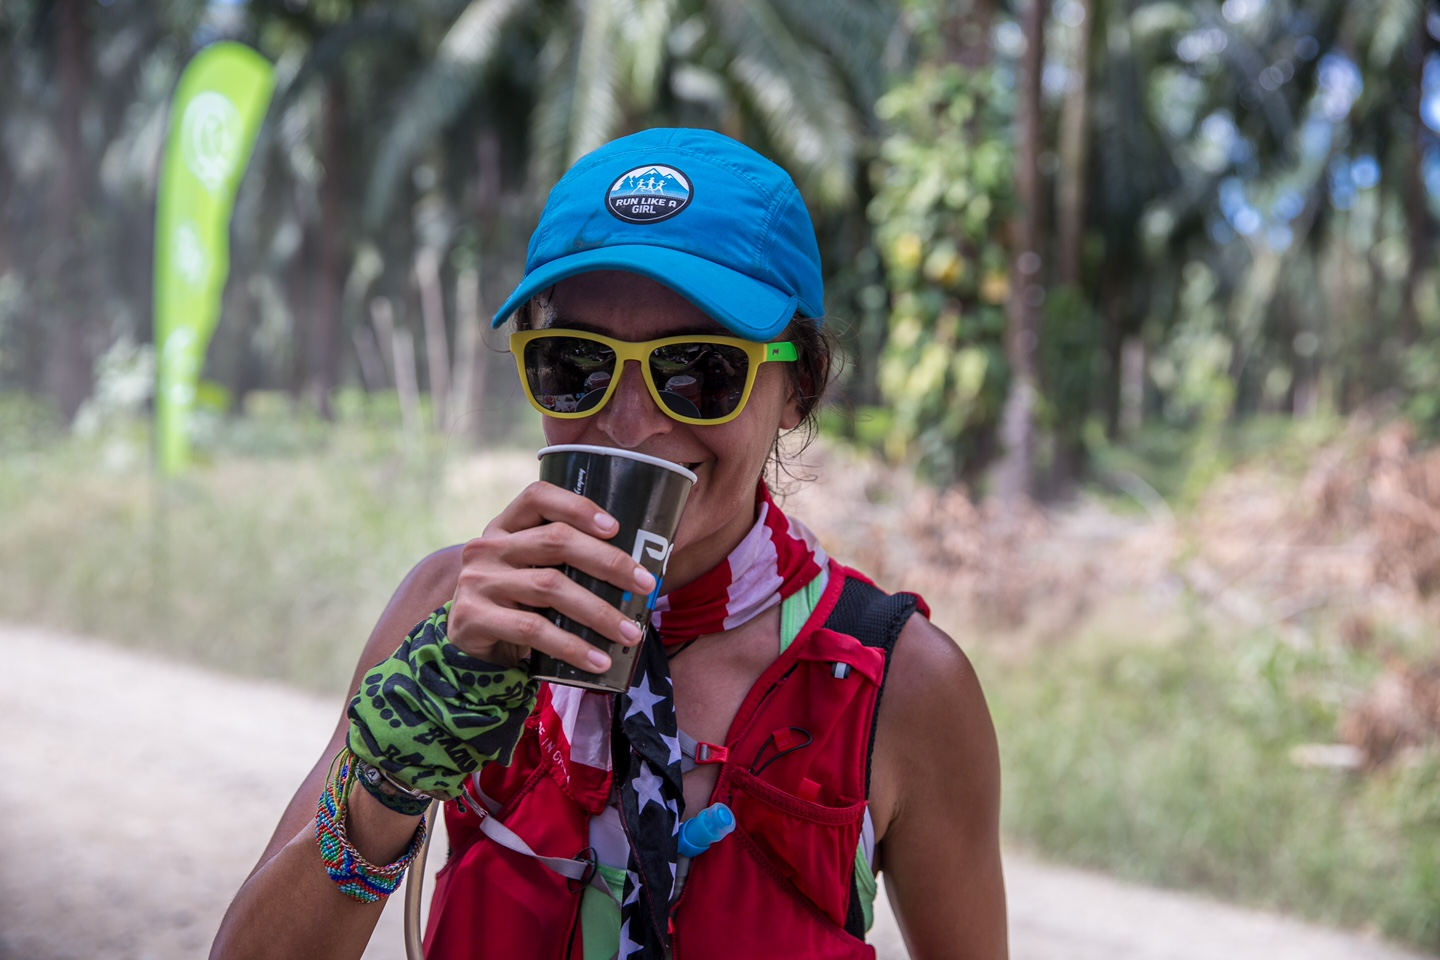 At the first aid station, my first of 193,743,289,259 sips of Poweraid. Photo by: Hilary Ann